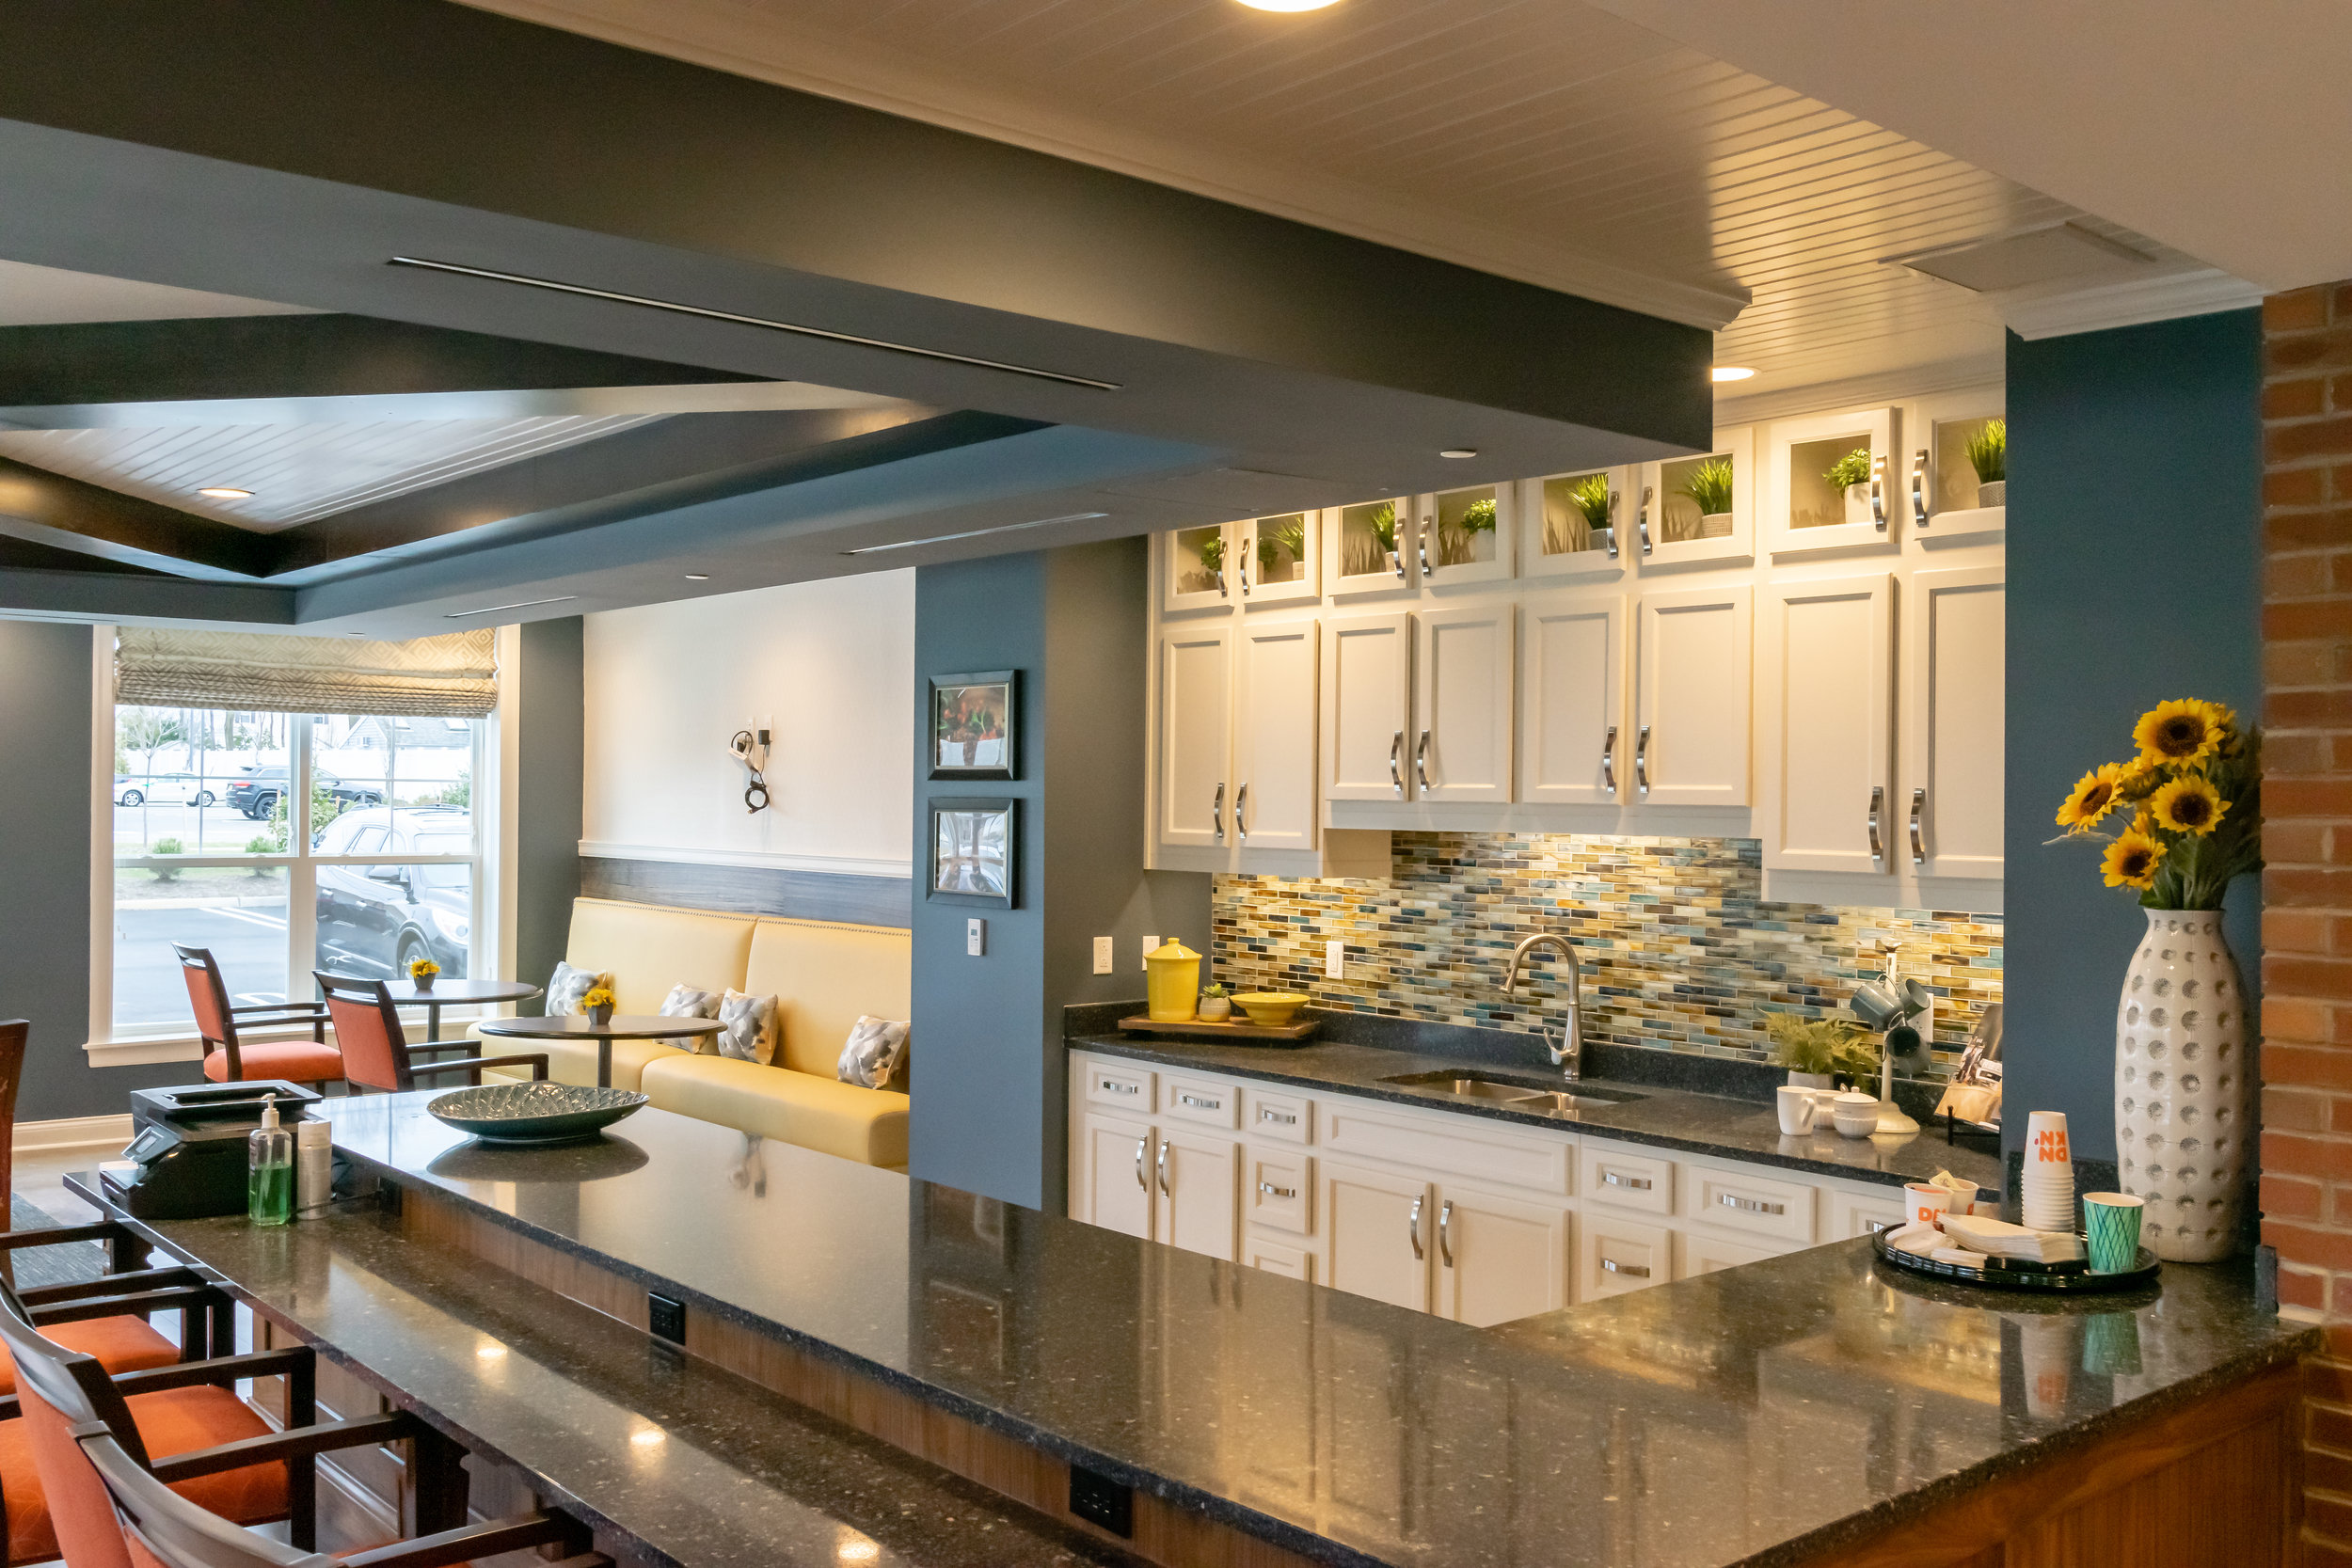 Interior Kitchen Bar The Chelsea Senior Living Facility Built by March Associates Construction. We build luxury residential buildings.